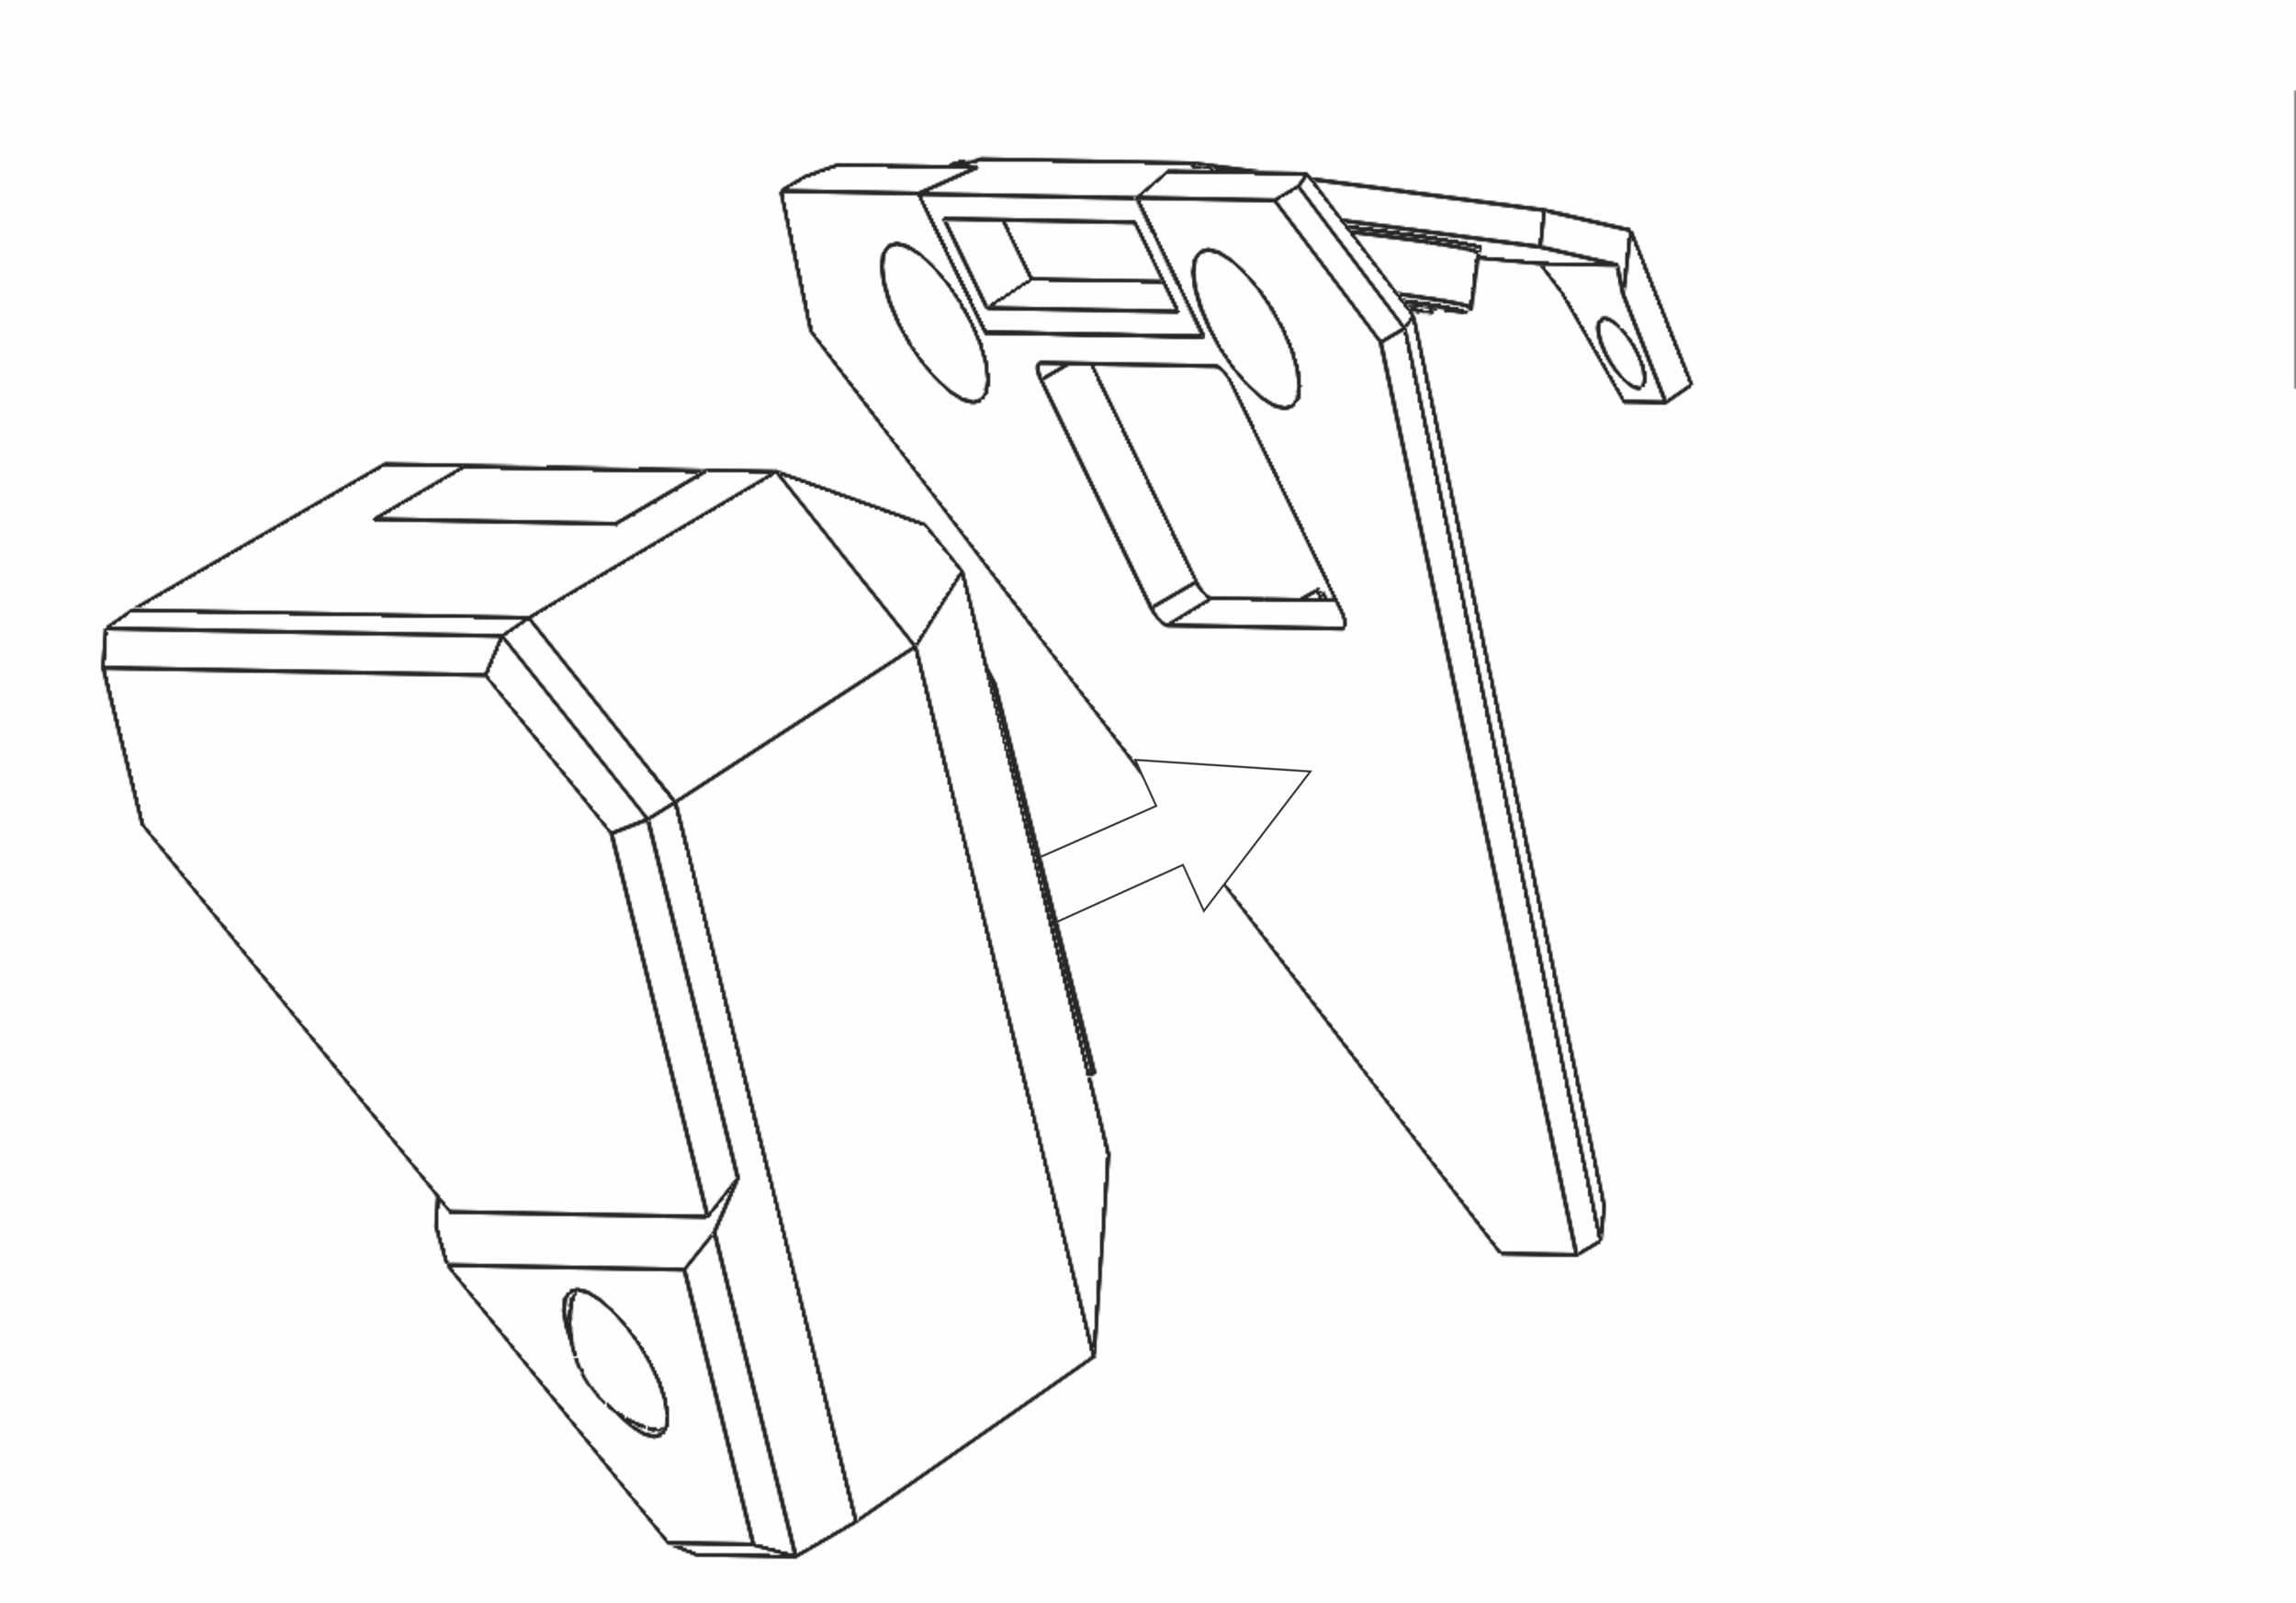 PoE_Magnetic_Bracket_Attachment.png